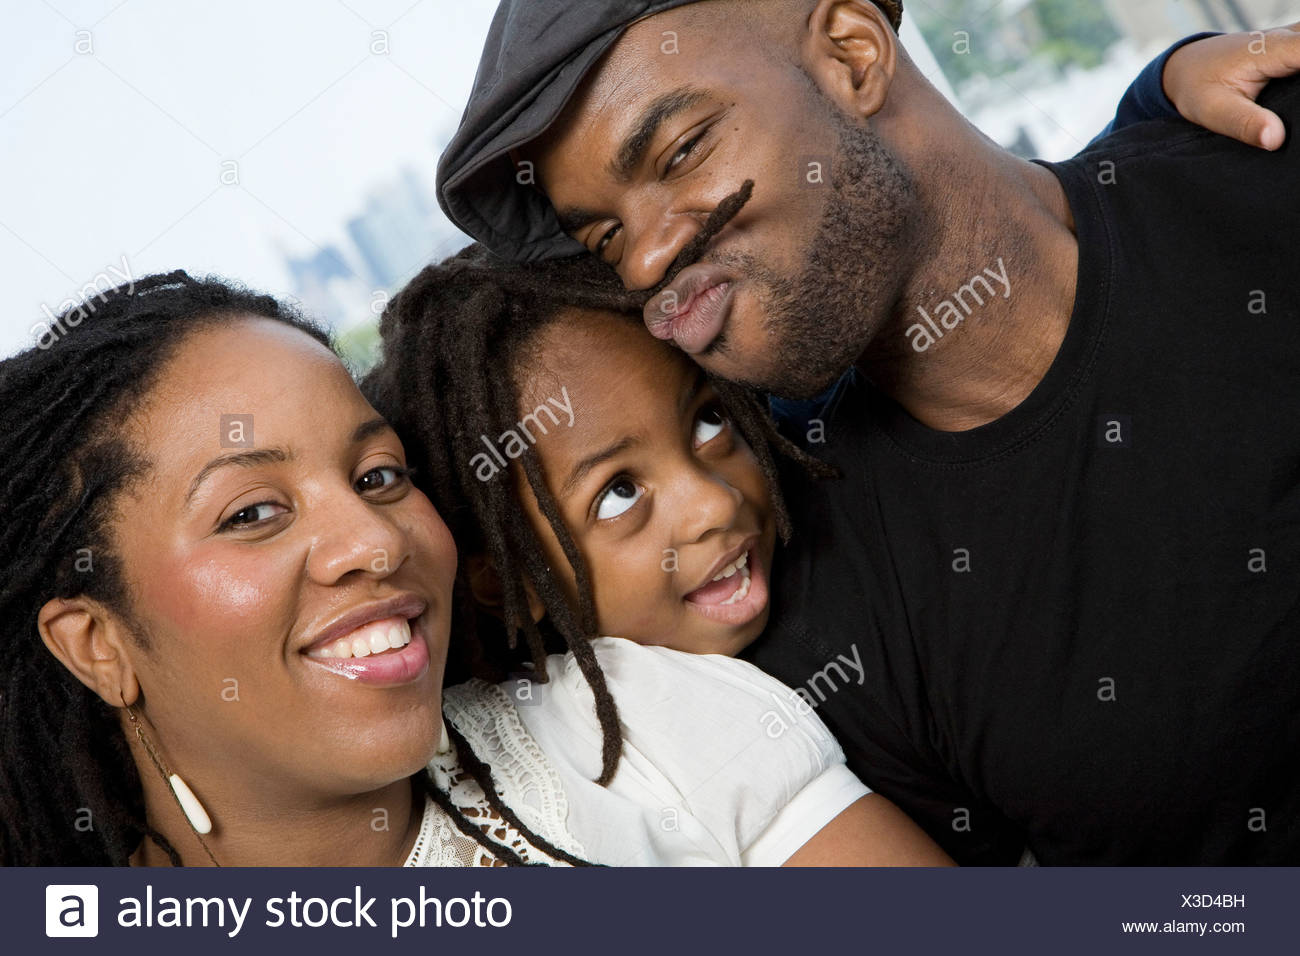 Two parents and their son goofing around Stock Photo